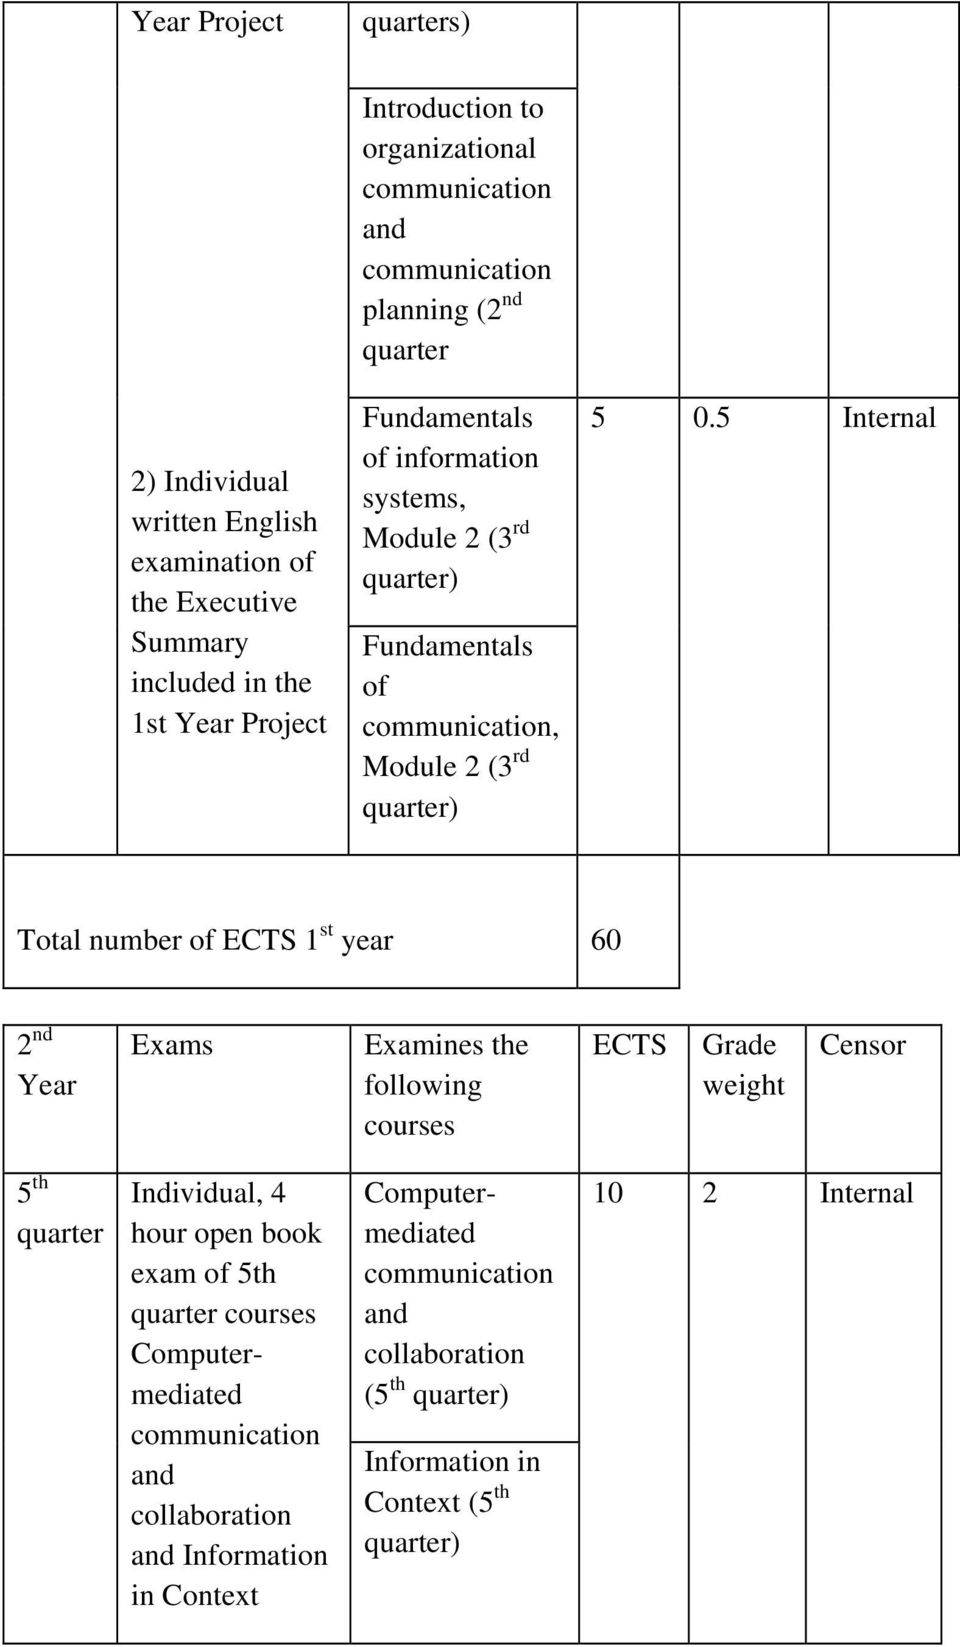 5 Internal Total number of ECTS 1 st year 60 2 nd Year Exams Examines the following courses ECTS Grade weight Censor 5 th Individual, 4 hour open book